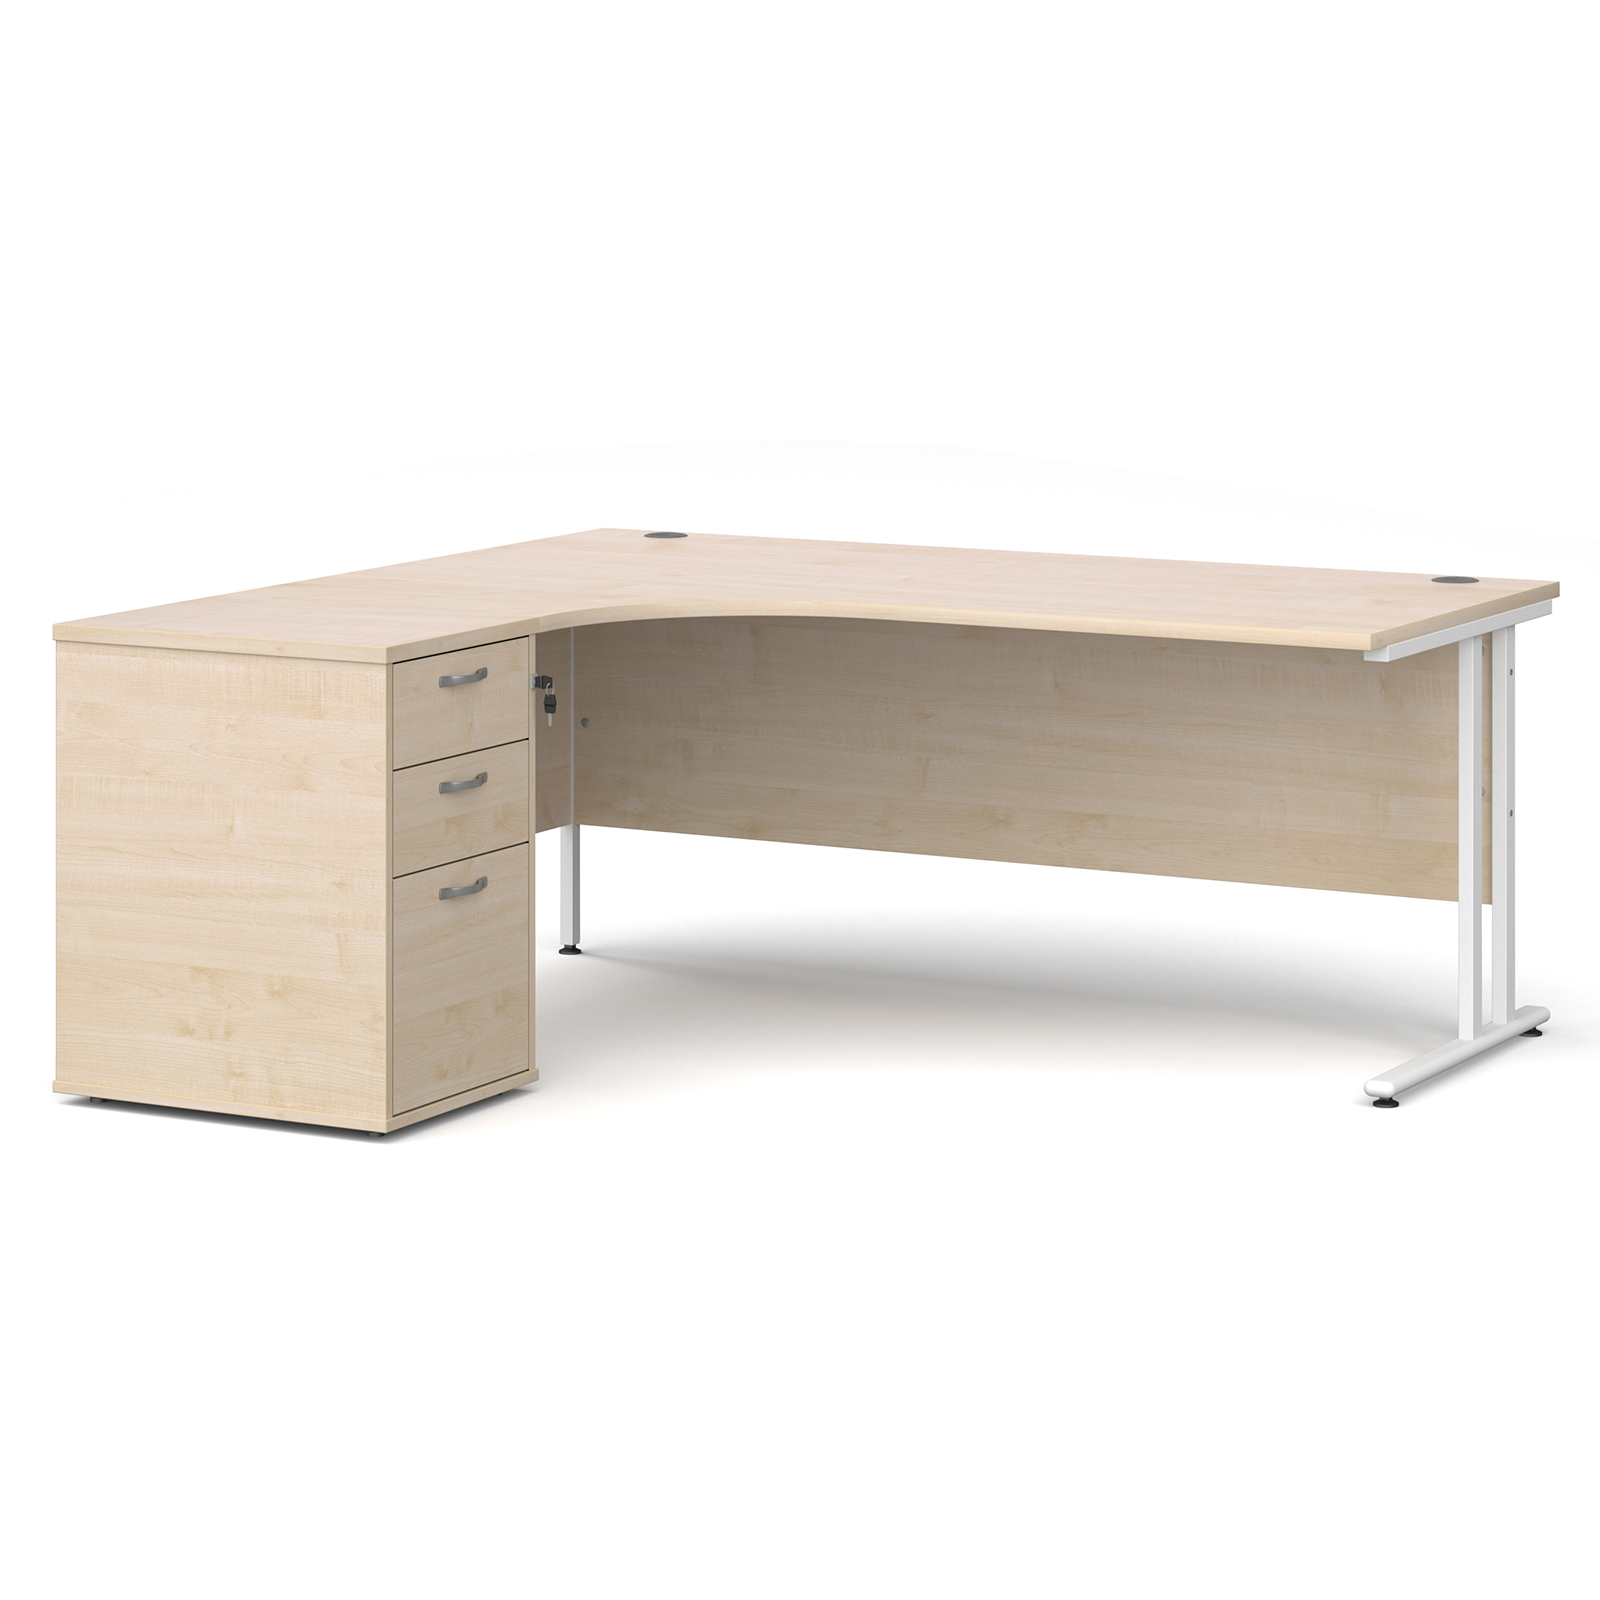 Left Handed Maestro 25 left hand ergonomic desk 1800mm with white cantilever frame and desk high pedestal - maple